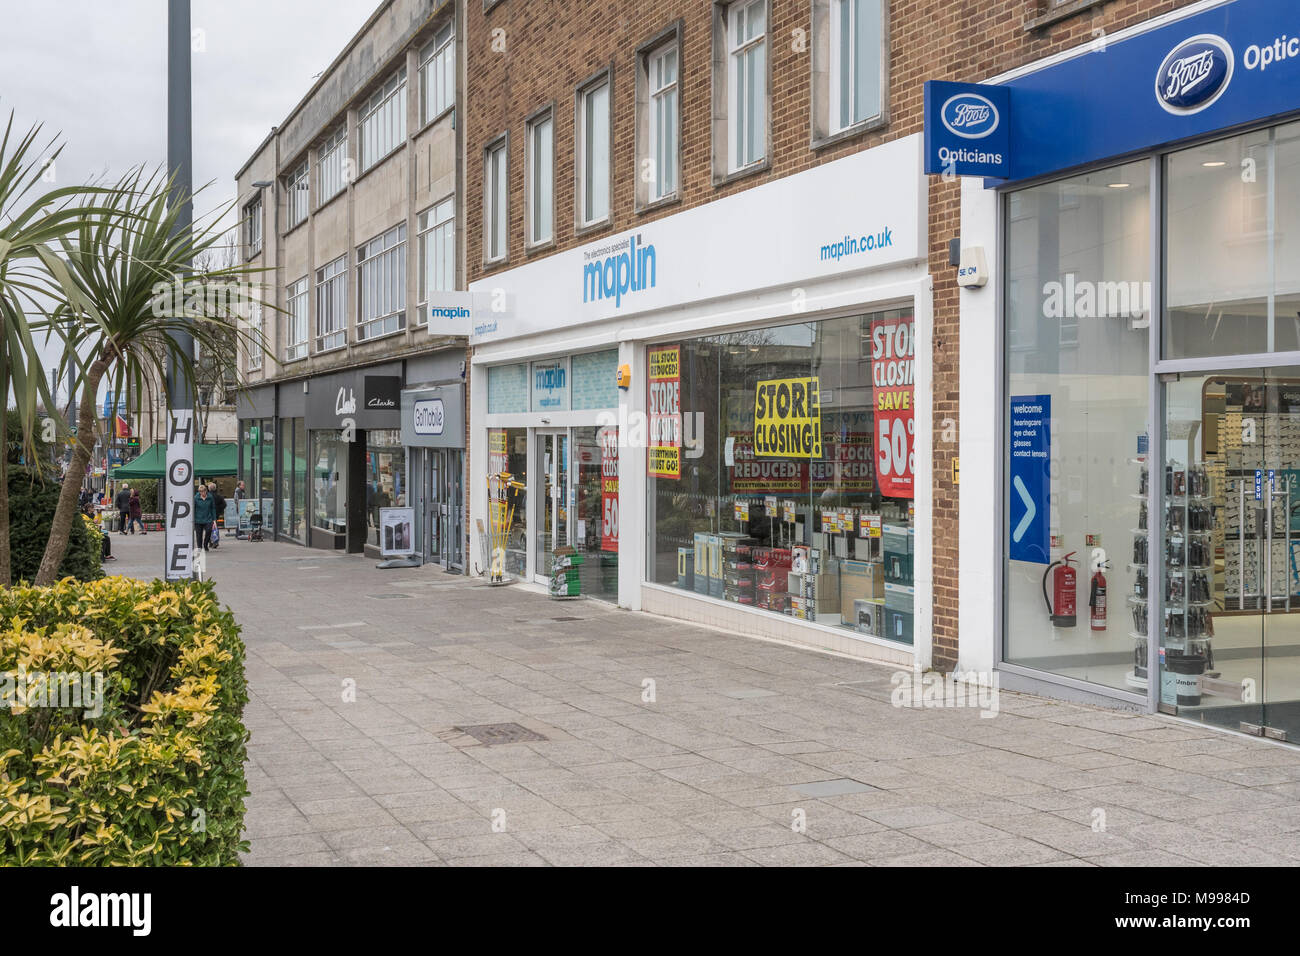 Maplin store in Plymouth after announcing it was shutting all its stores. Metaphor for struggling high street retailers, and company administrations. - Stock Image